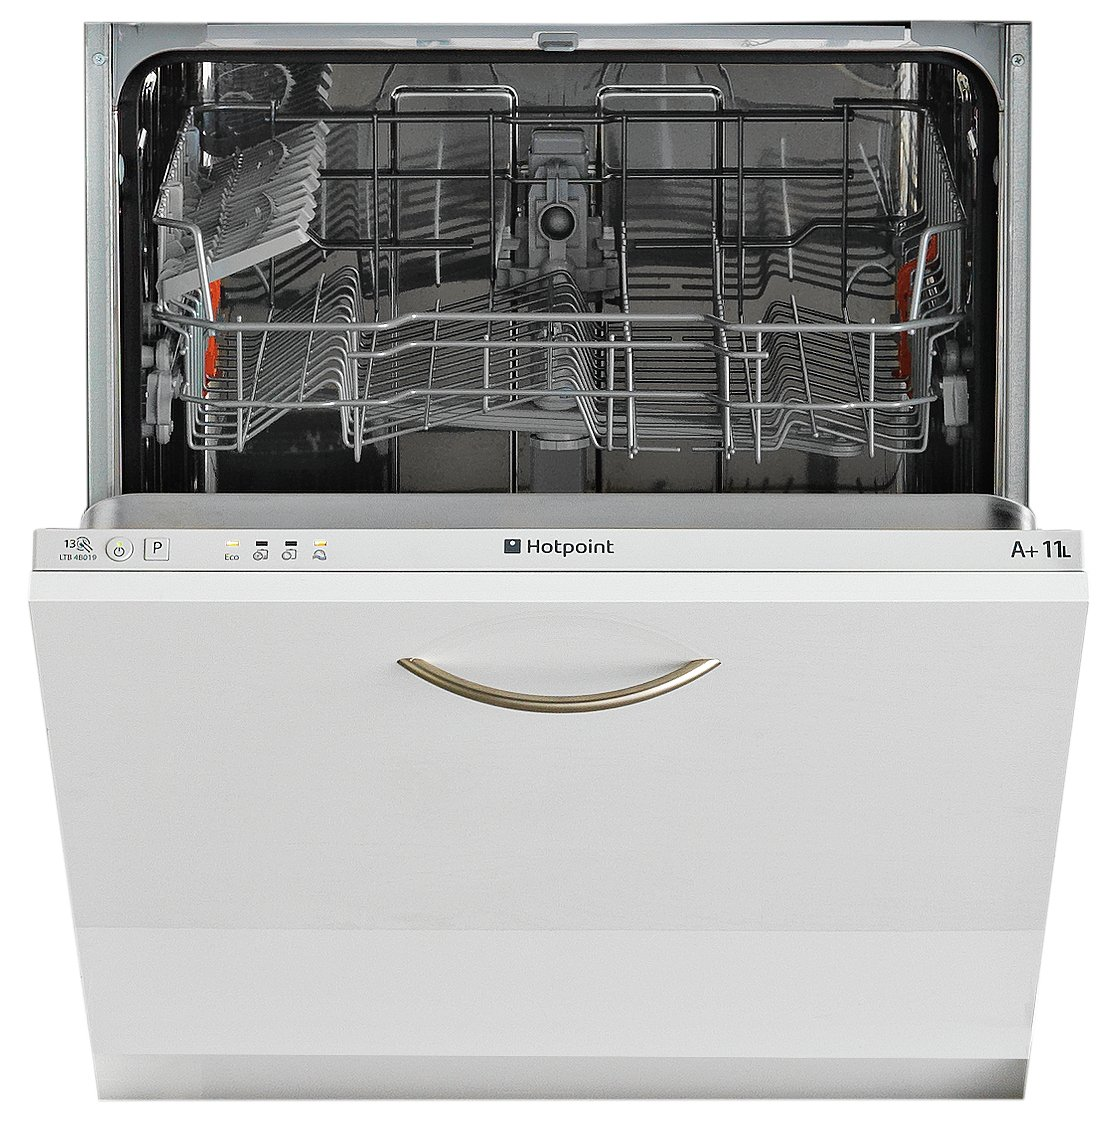 Image of Hotpoint Aquarius LTB 4B019 Built-in Dishwasher - White